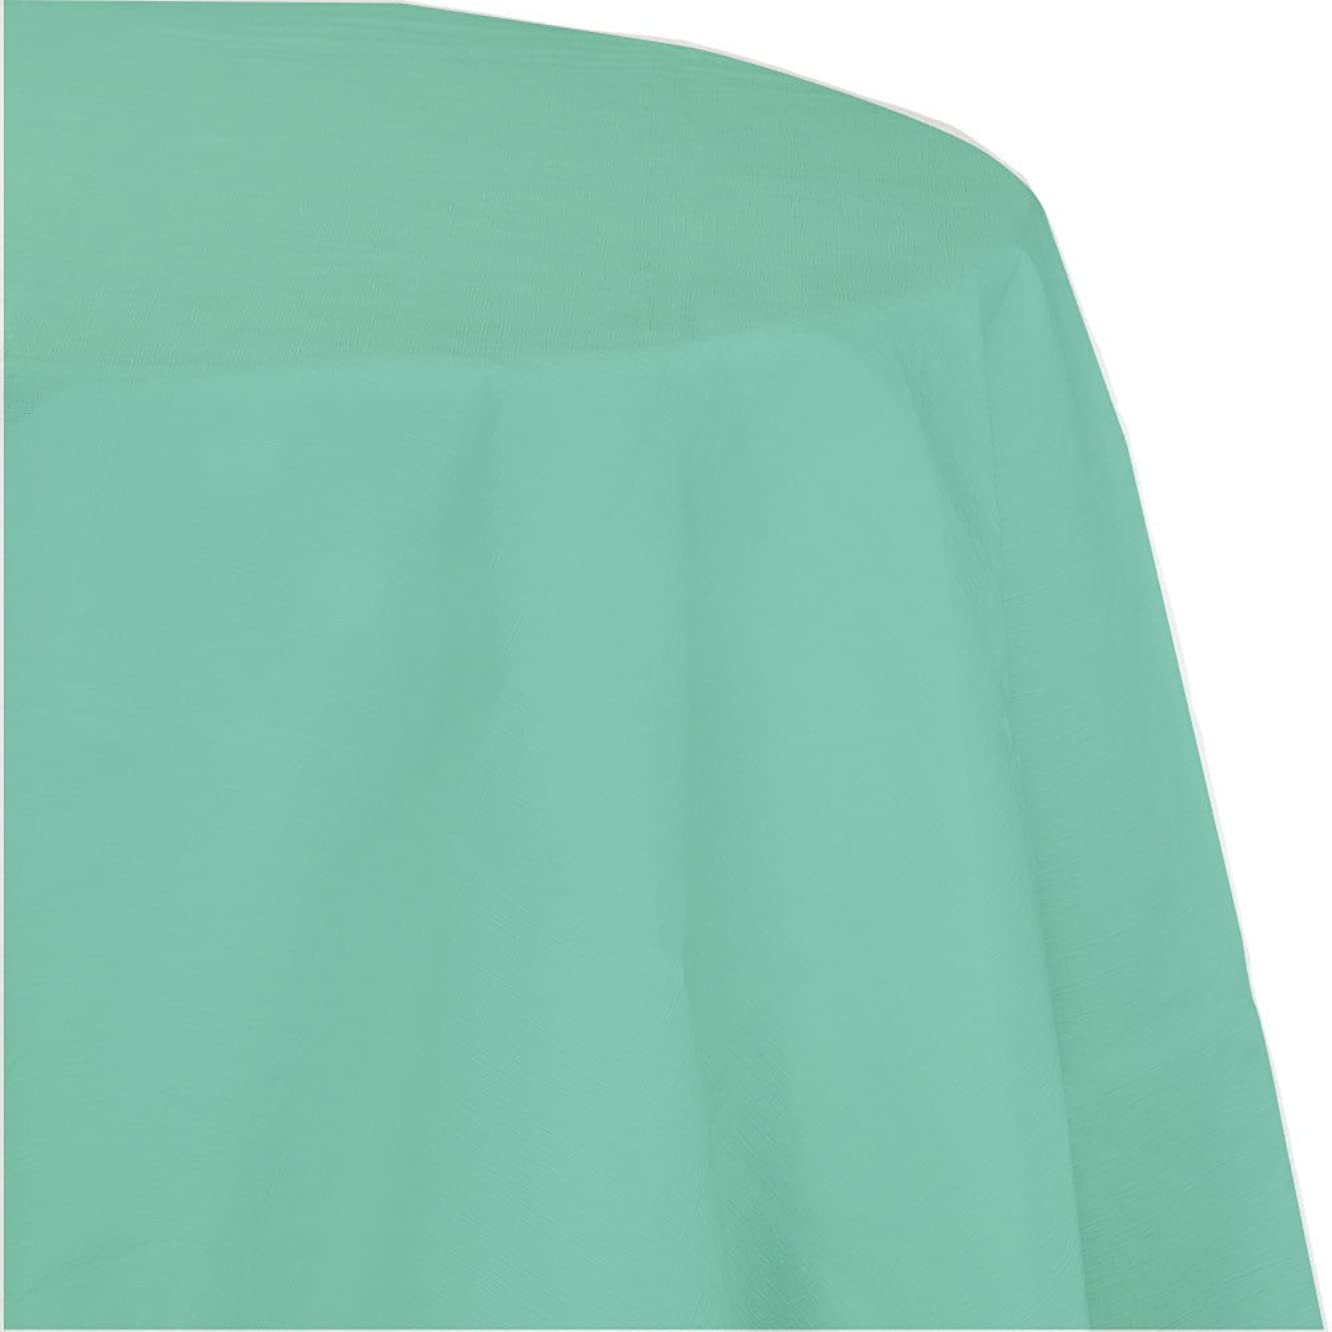 Creative Converting 318902 Touch of Color 12 Count Octy-Round Paper Table Covers, Fresh Mint